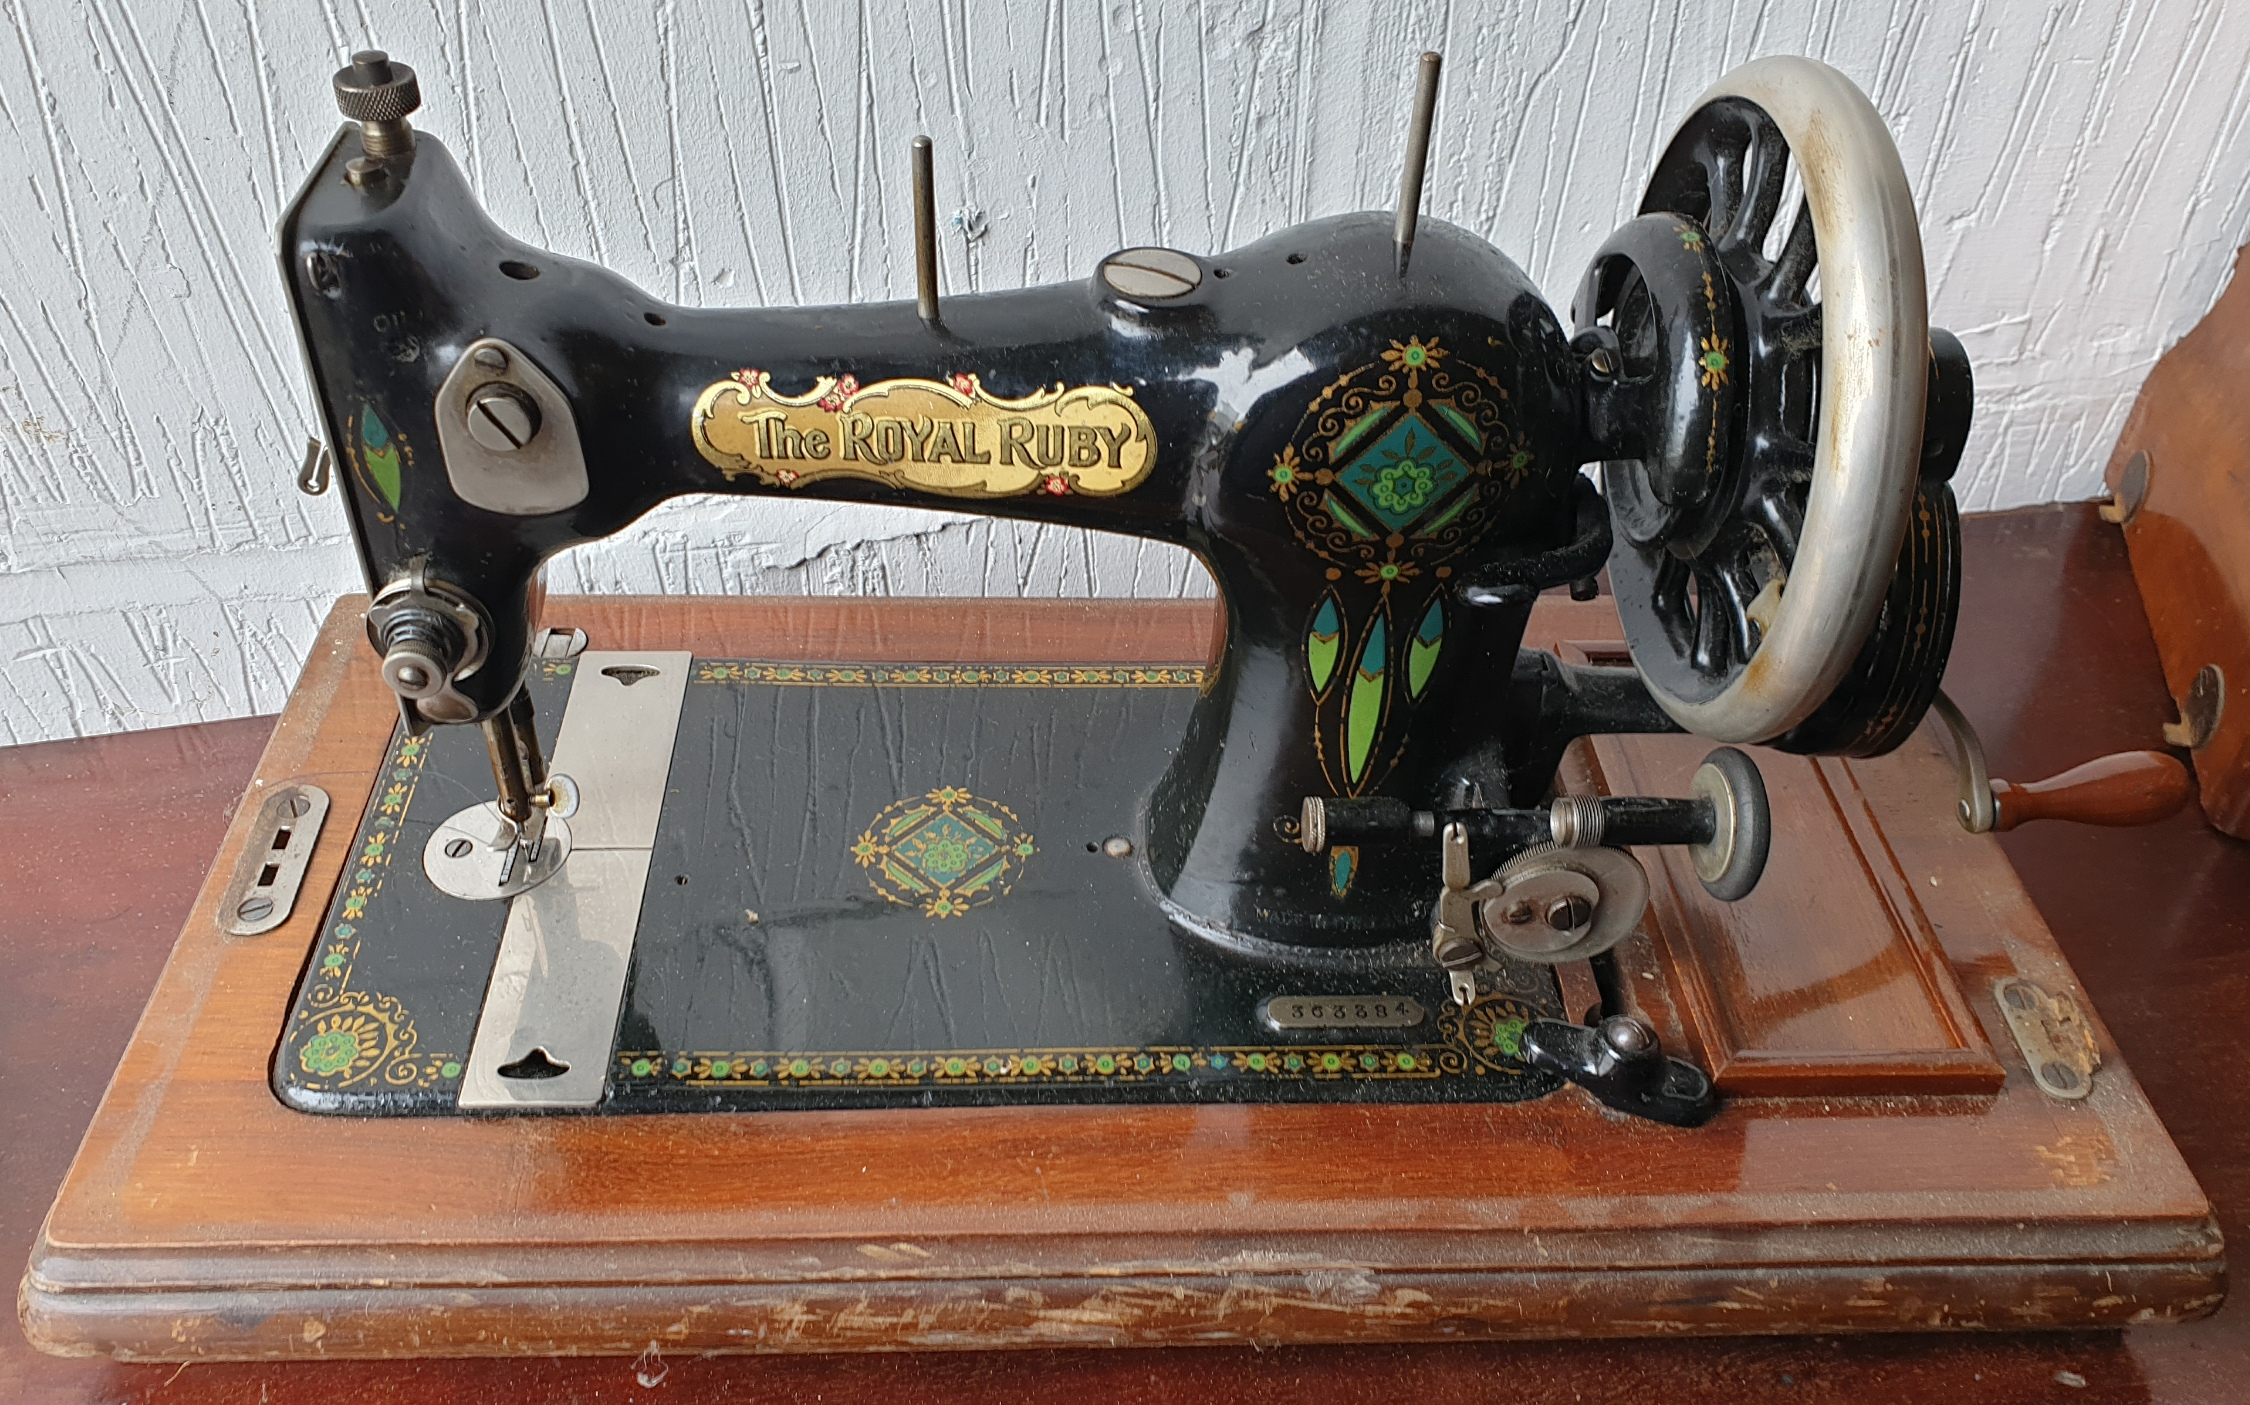 Vintage The Royal Ruby Sewing Machine - Image 2 of 5